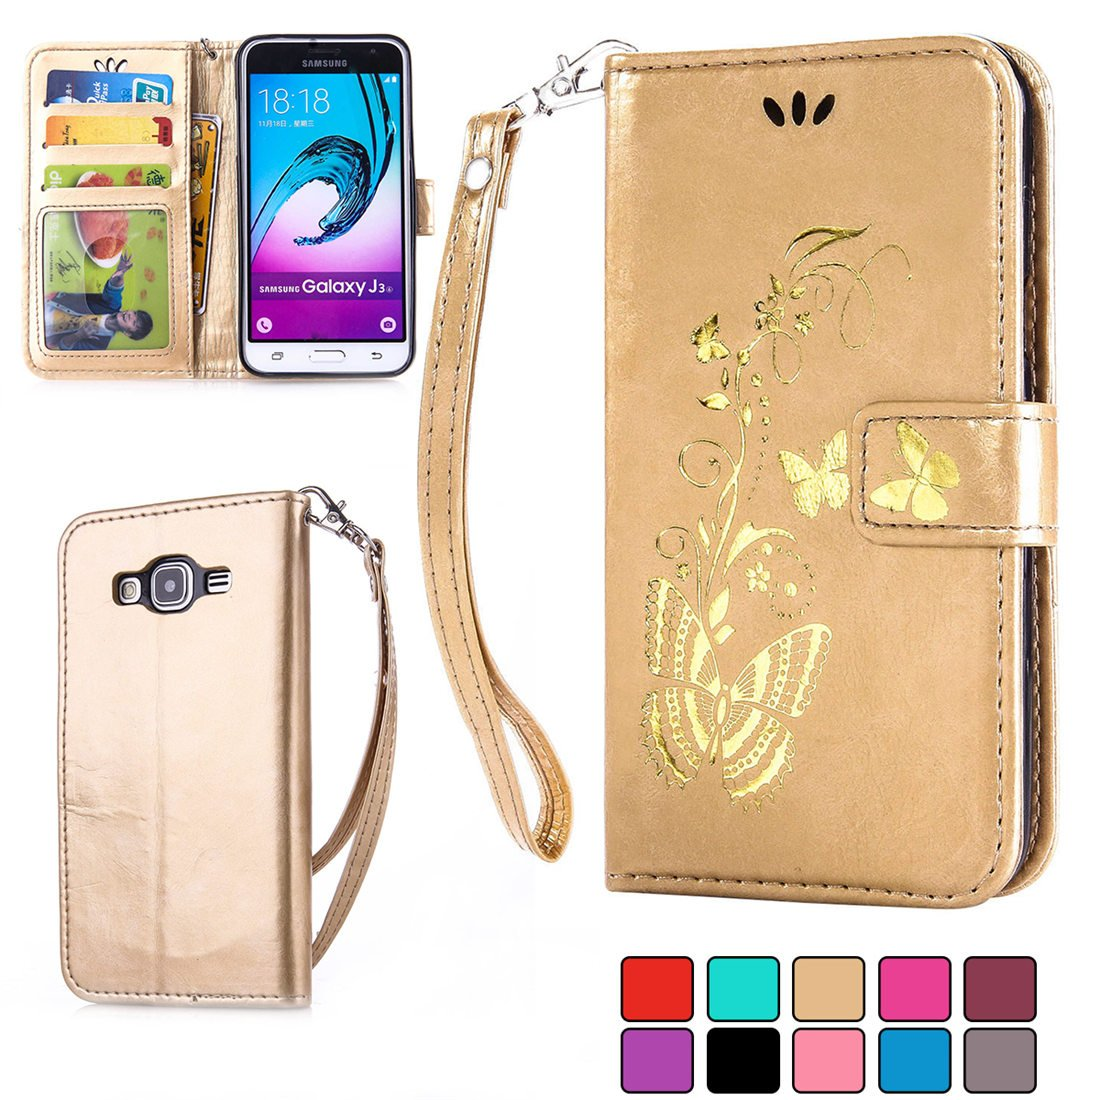 Samsung Galaxy J3 (2015/2016) Wallet PU Leather Case [with Free Tempered Glass Screen Protector],iFeeker Stand Function Retro Flip Case with Lanyard Strap/Rope, Elegant Vintage Pressed Gold Butterfly Flower Pattern Magnetic Closure Credit Card/Cash Holde